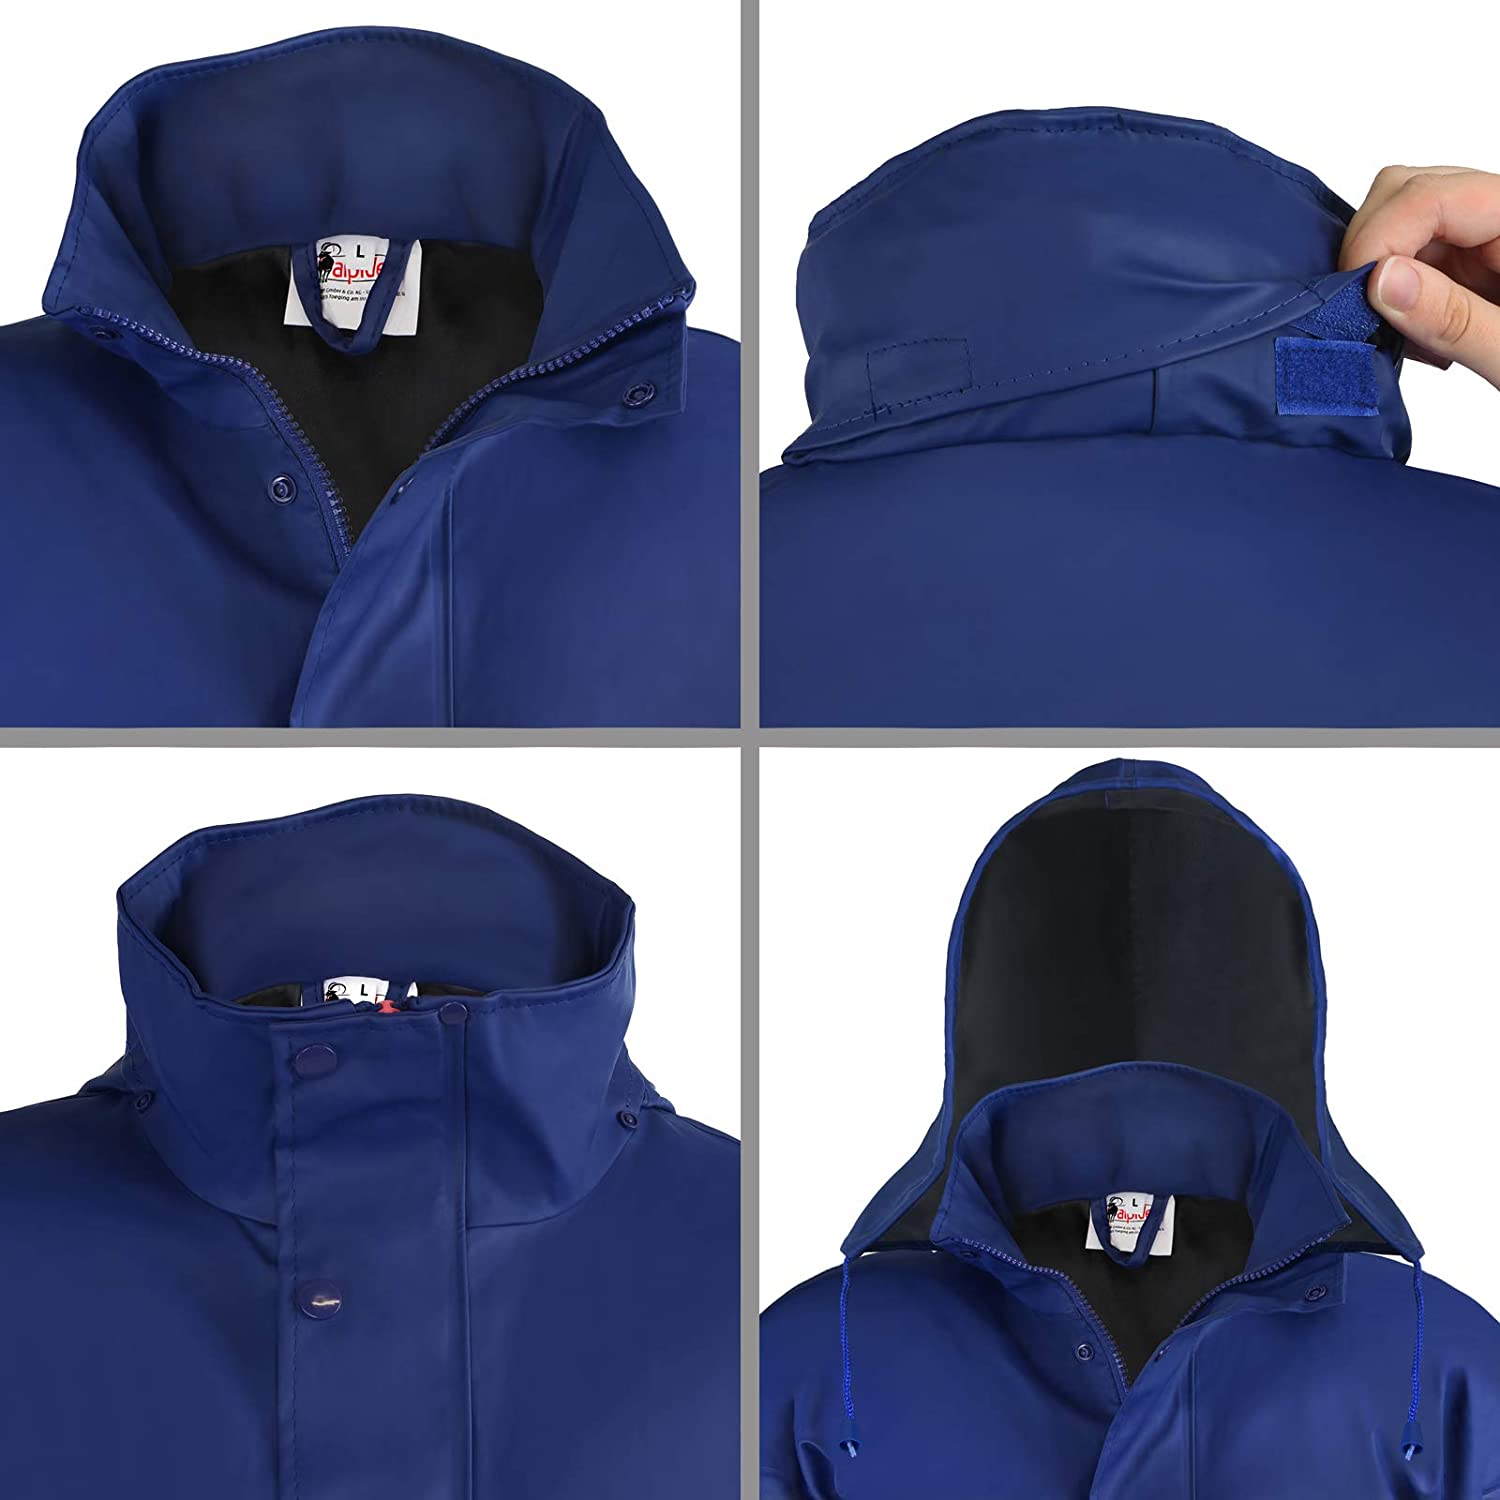 light windproof transitional jacket waterproof ALPIDEX Womens rain jacket with hood Size S M L breathable